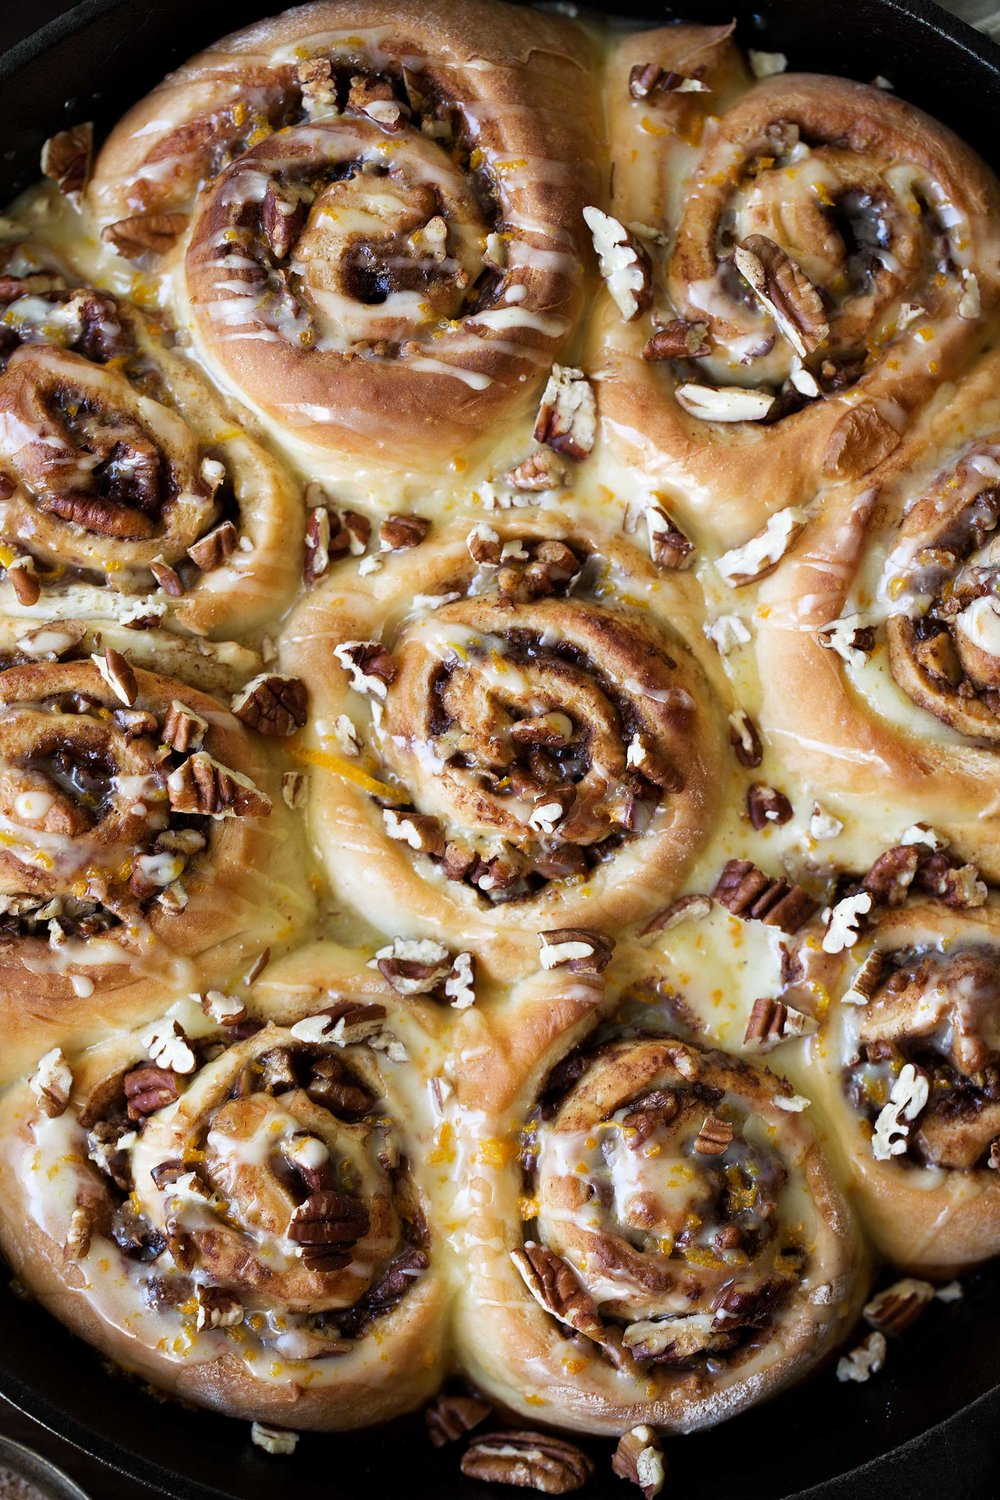 Orange-Sticky-Buns-2.jpg